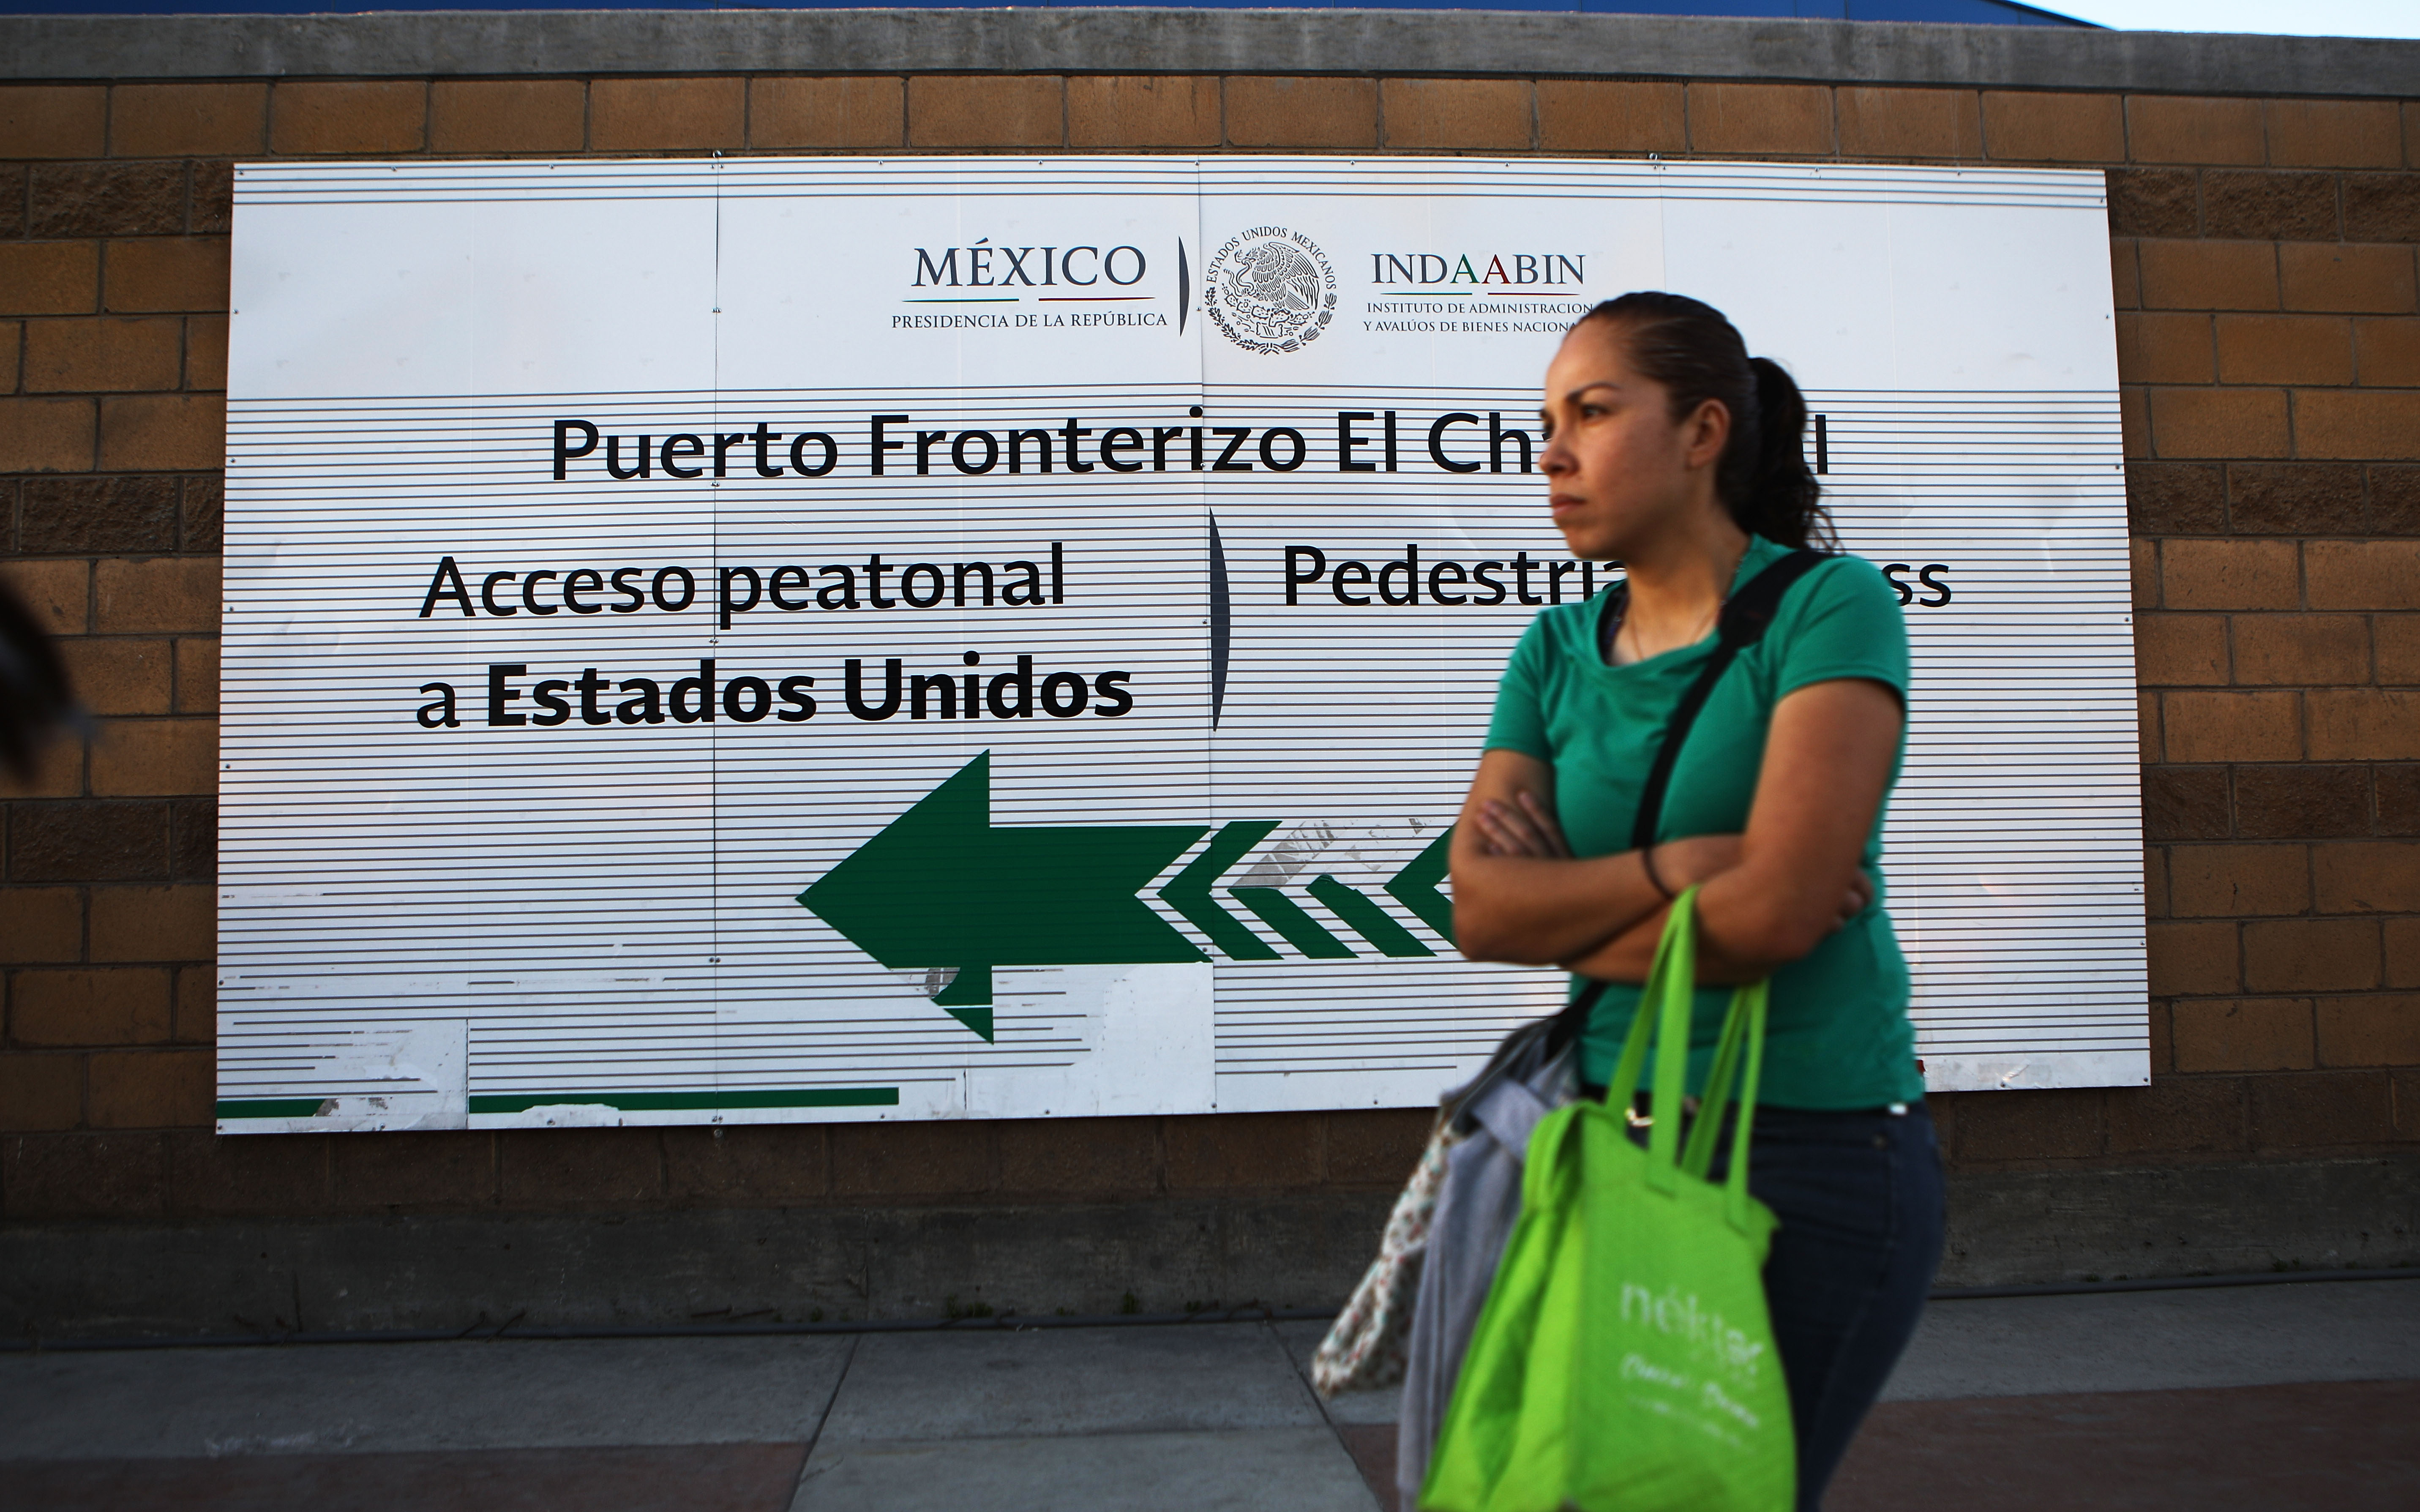 Salvadoran Asylum-Seeker Sues Federal Government After She Miscarried While Detained by ICE